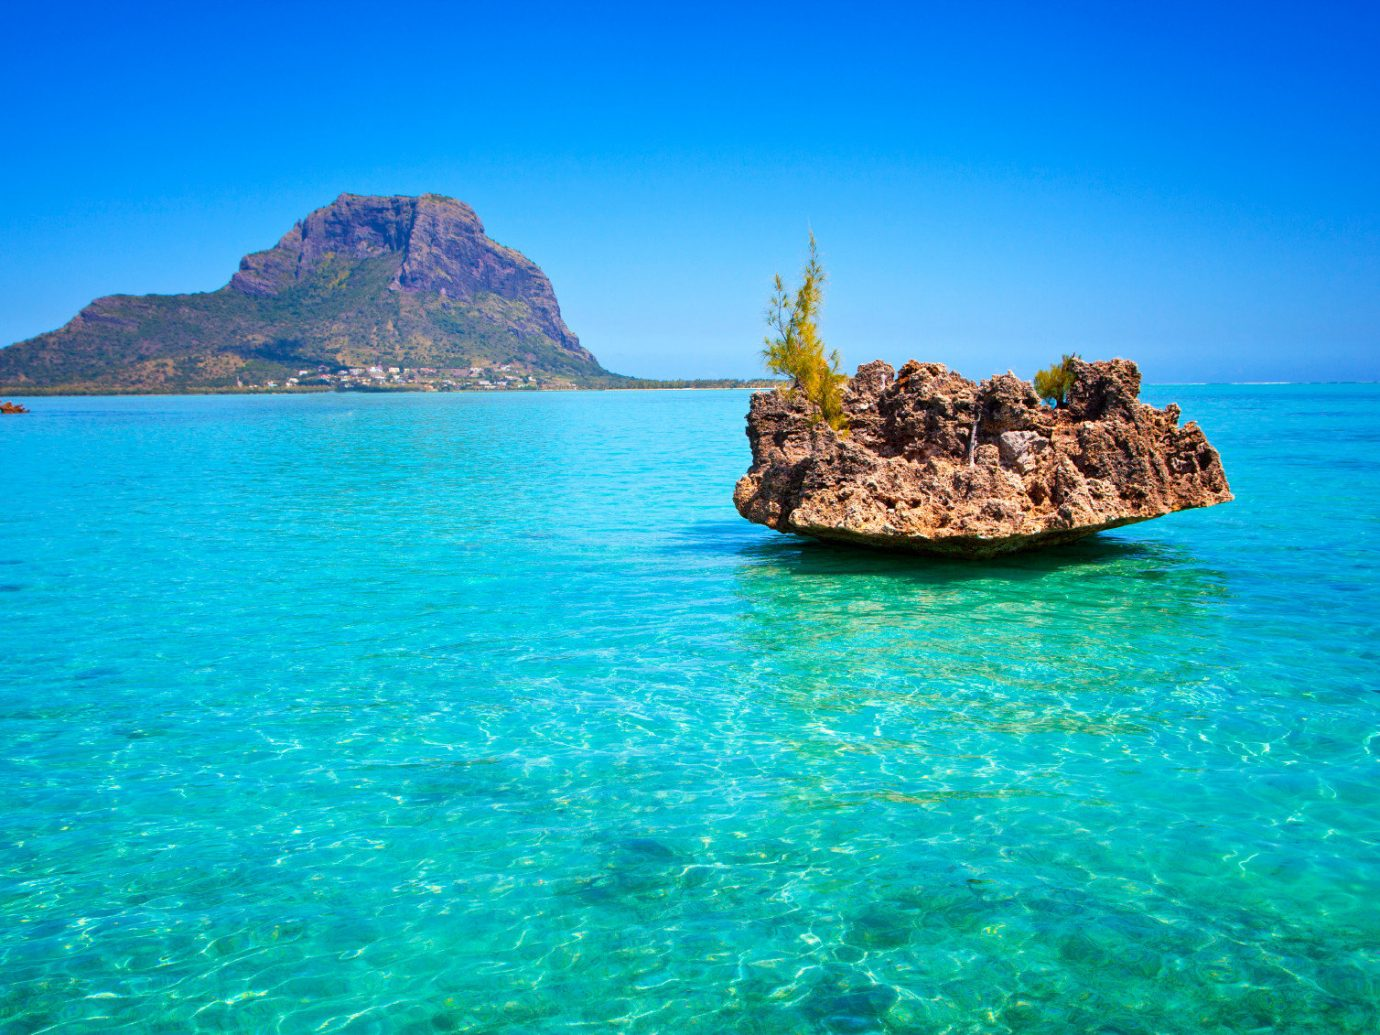 Trip Ideas water sky outdoor mountain Nature Sea landform geographical feature archipelago body of water islet Ocean Coast caribbean bay Island vacation Beach cape Lagoon Lake tropics cove blue terrain surrounded day distance